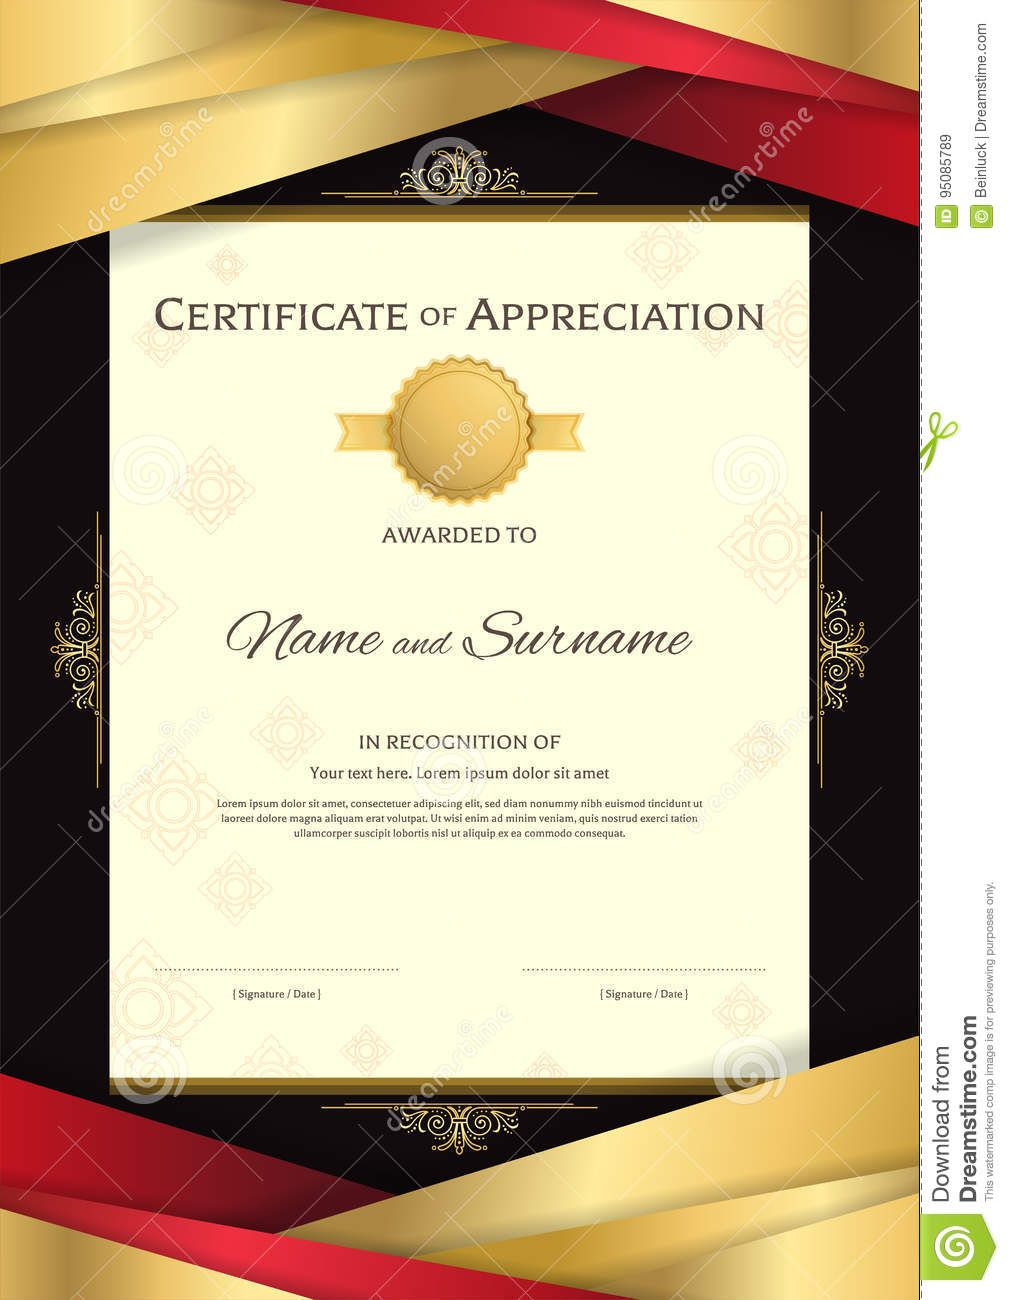 Portrait luxury certificate template with elegant golden border portrait luxury certificate template with elegant golden border stock vector image 95085789 yadclub Choice Image